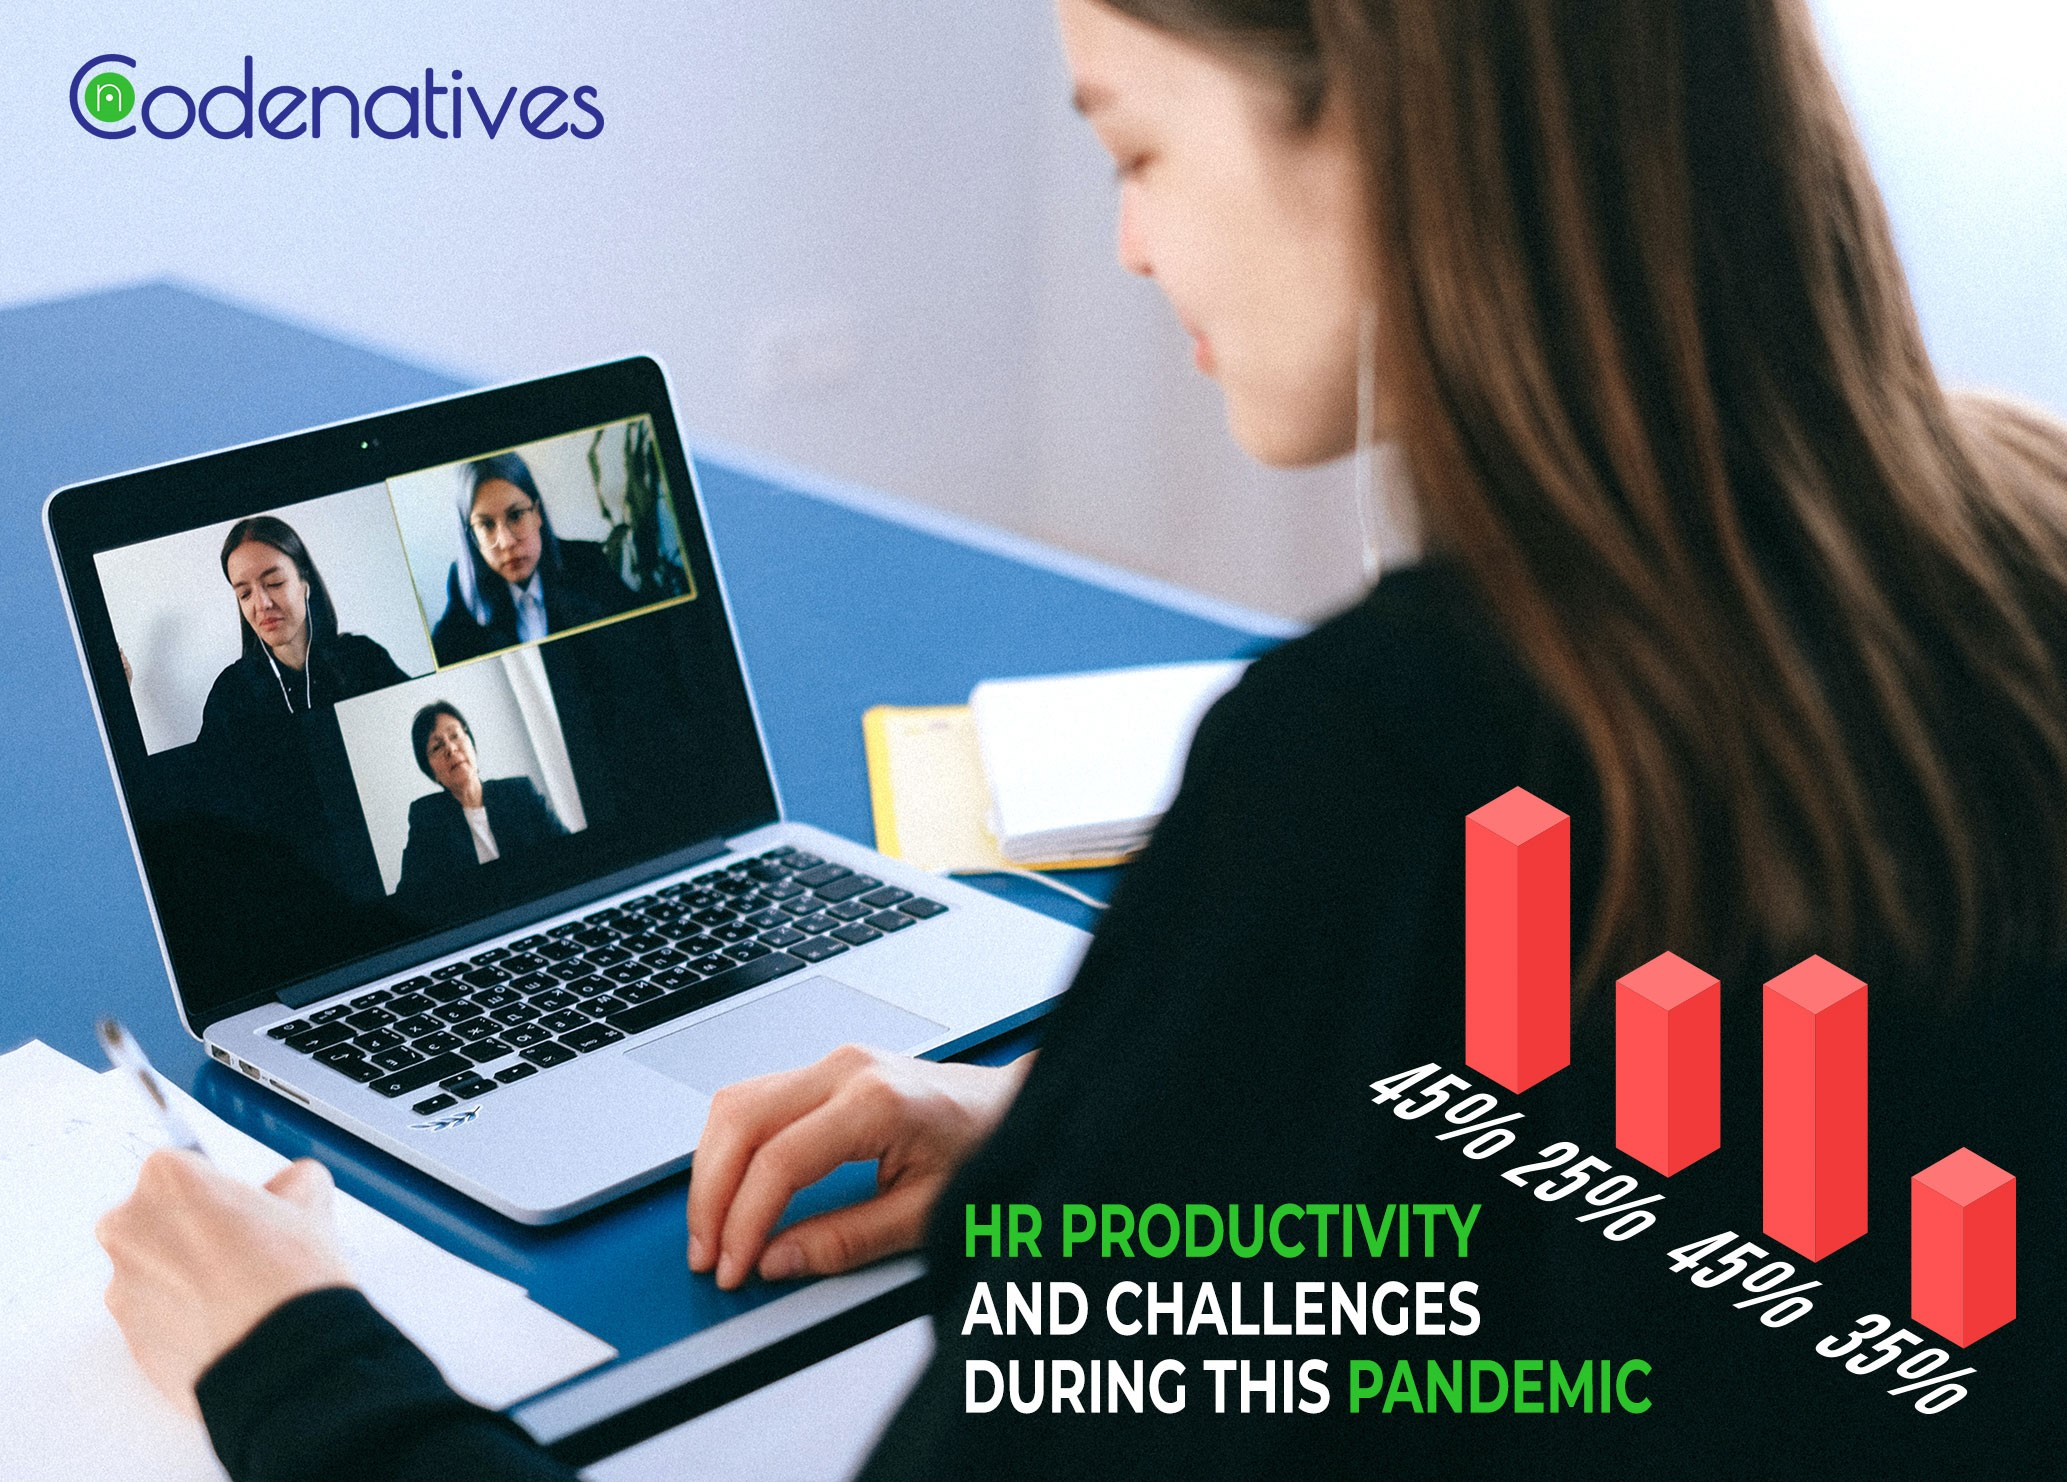 HR productivity and Challenges during these pandemic times